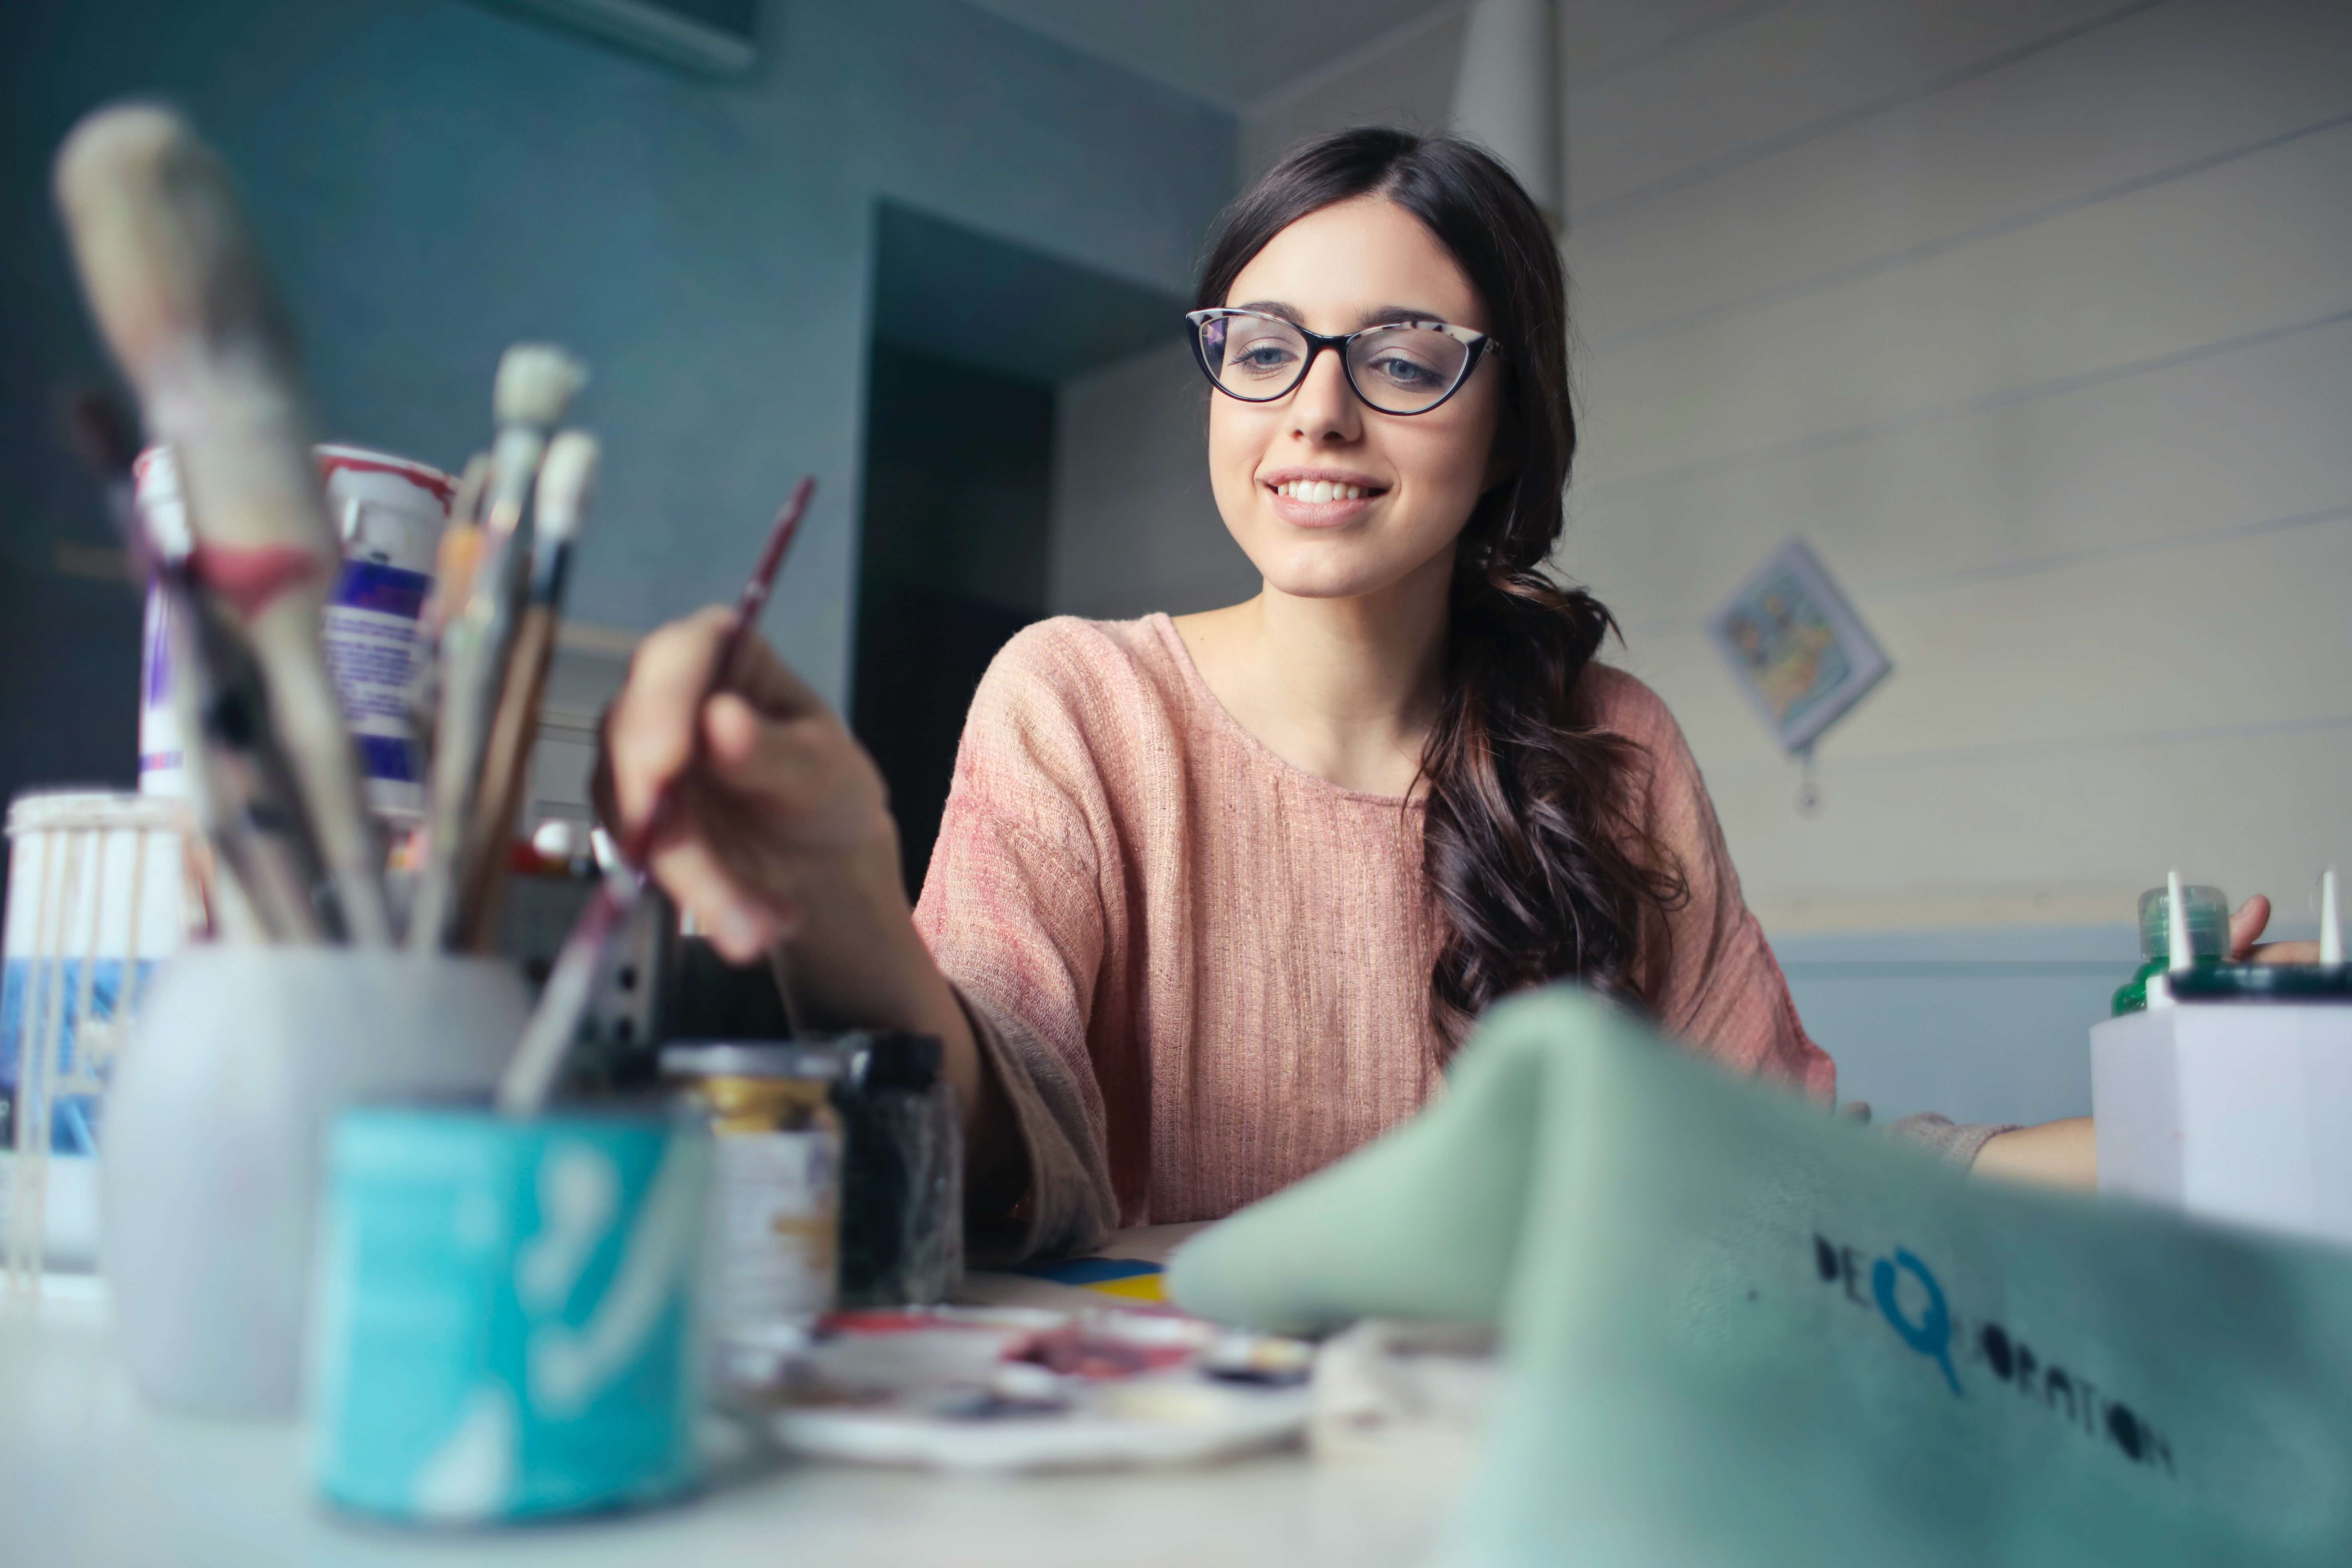 A woman with glasses holding a paintbrush.